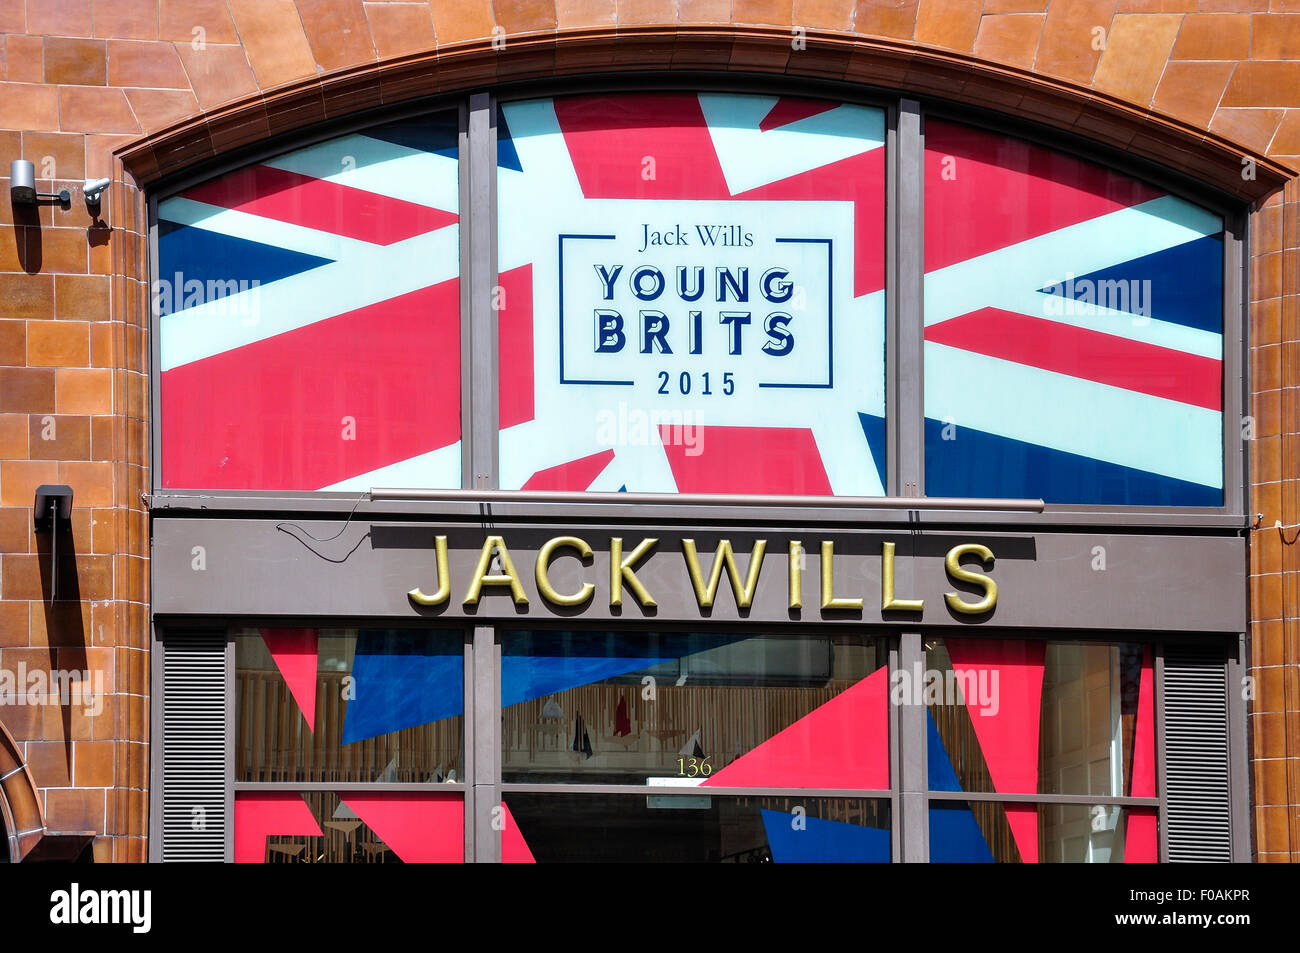 Jack Wills fashion store, Long Acre, Covent Garden, City of Westminster, London, England, United Kingdom - Stock Image